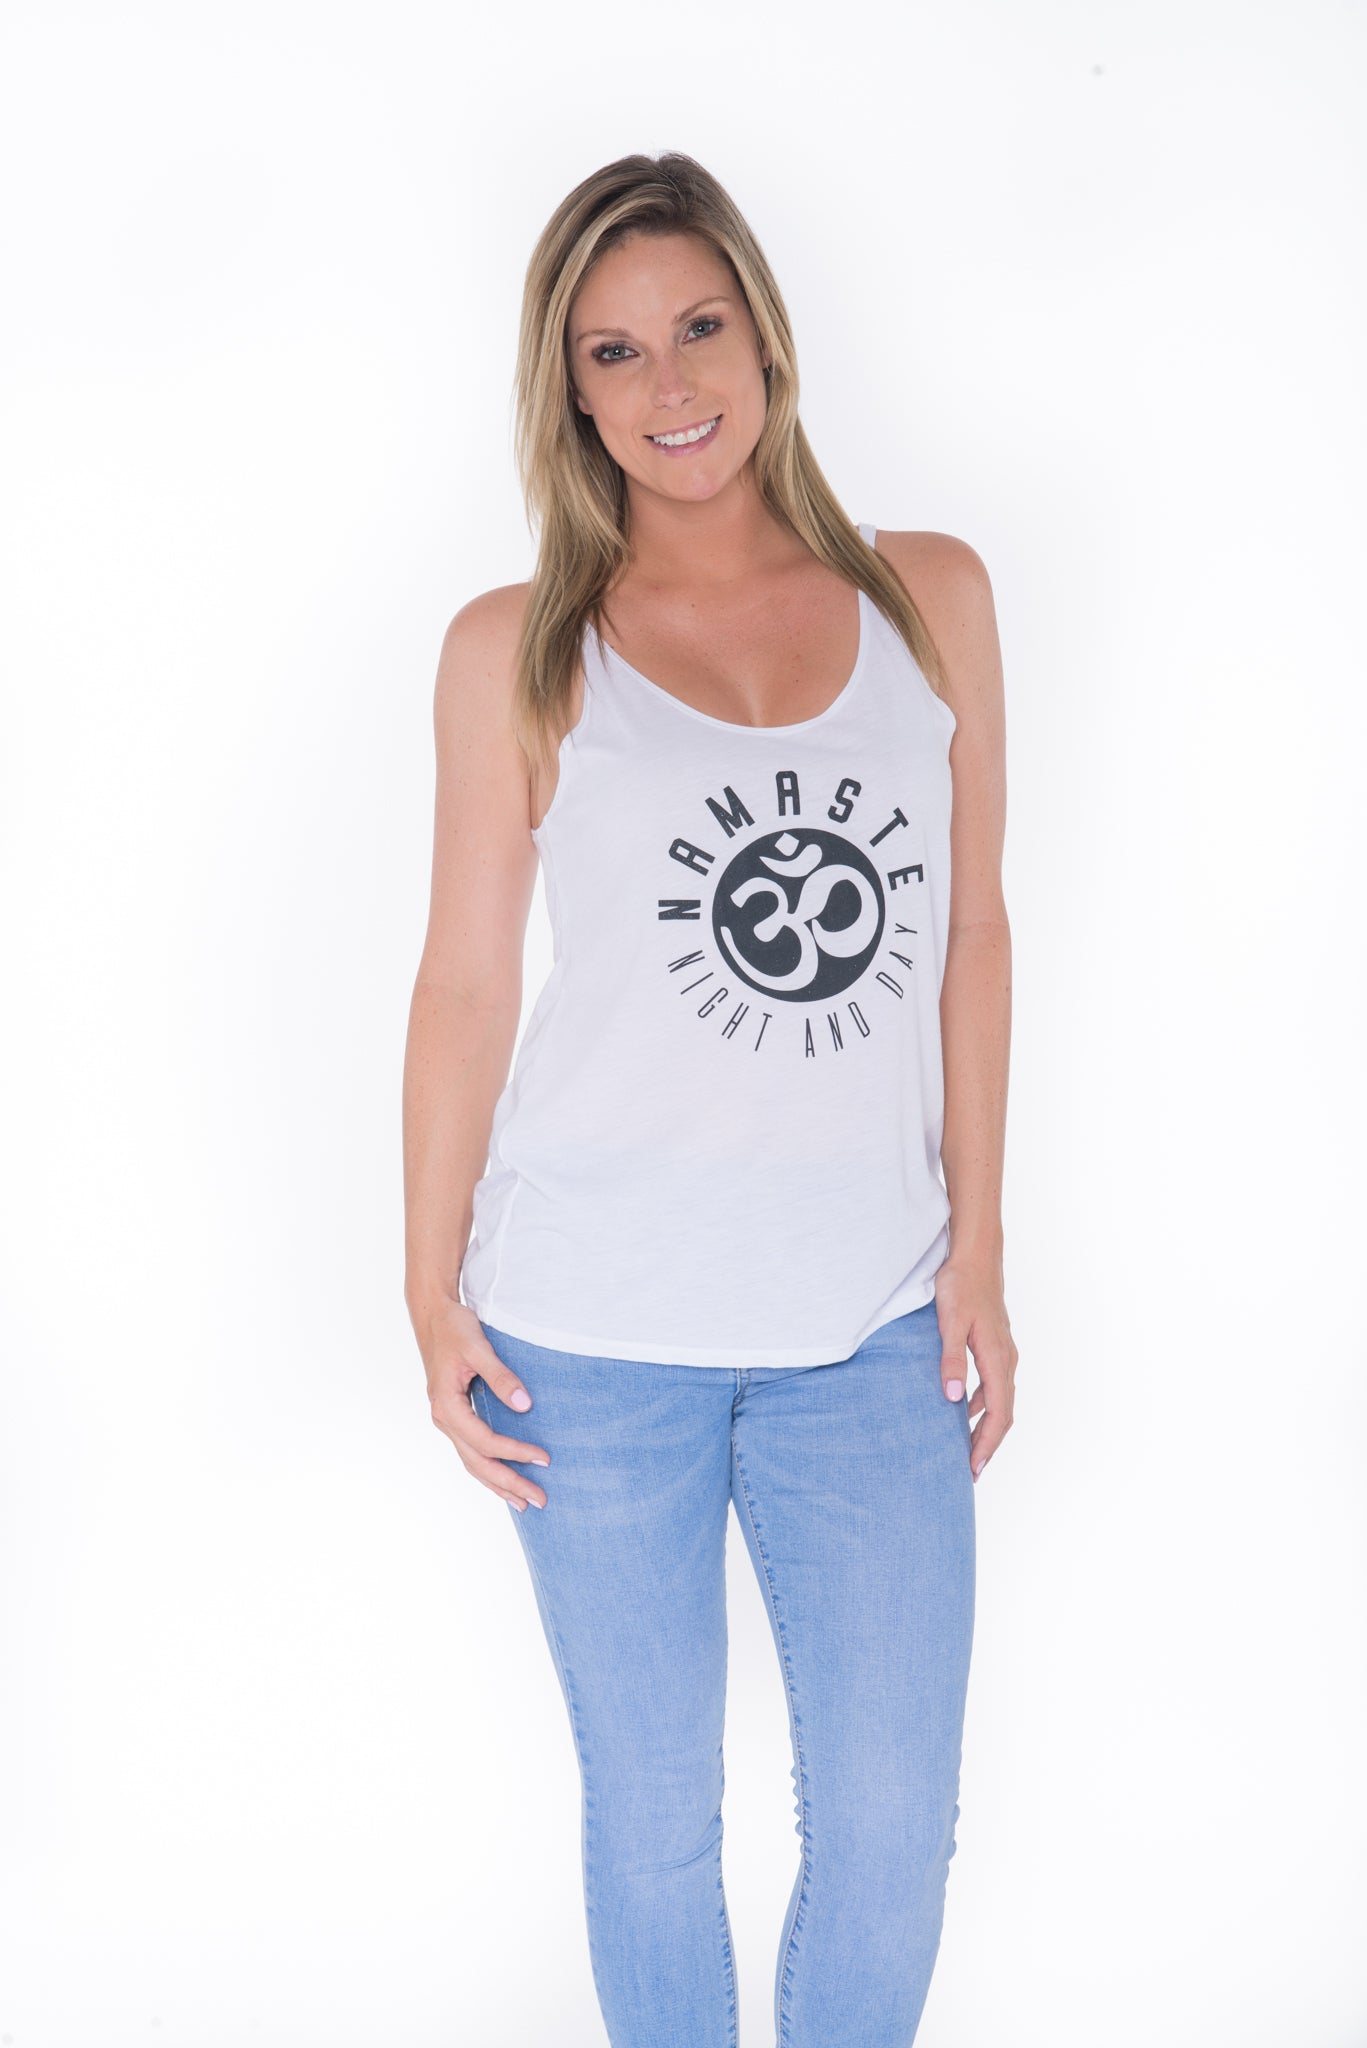 Namaste Night and Day Tank Top - White